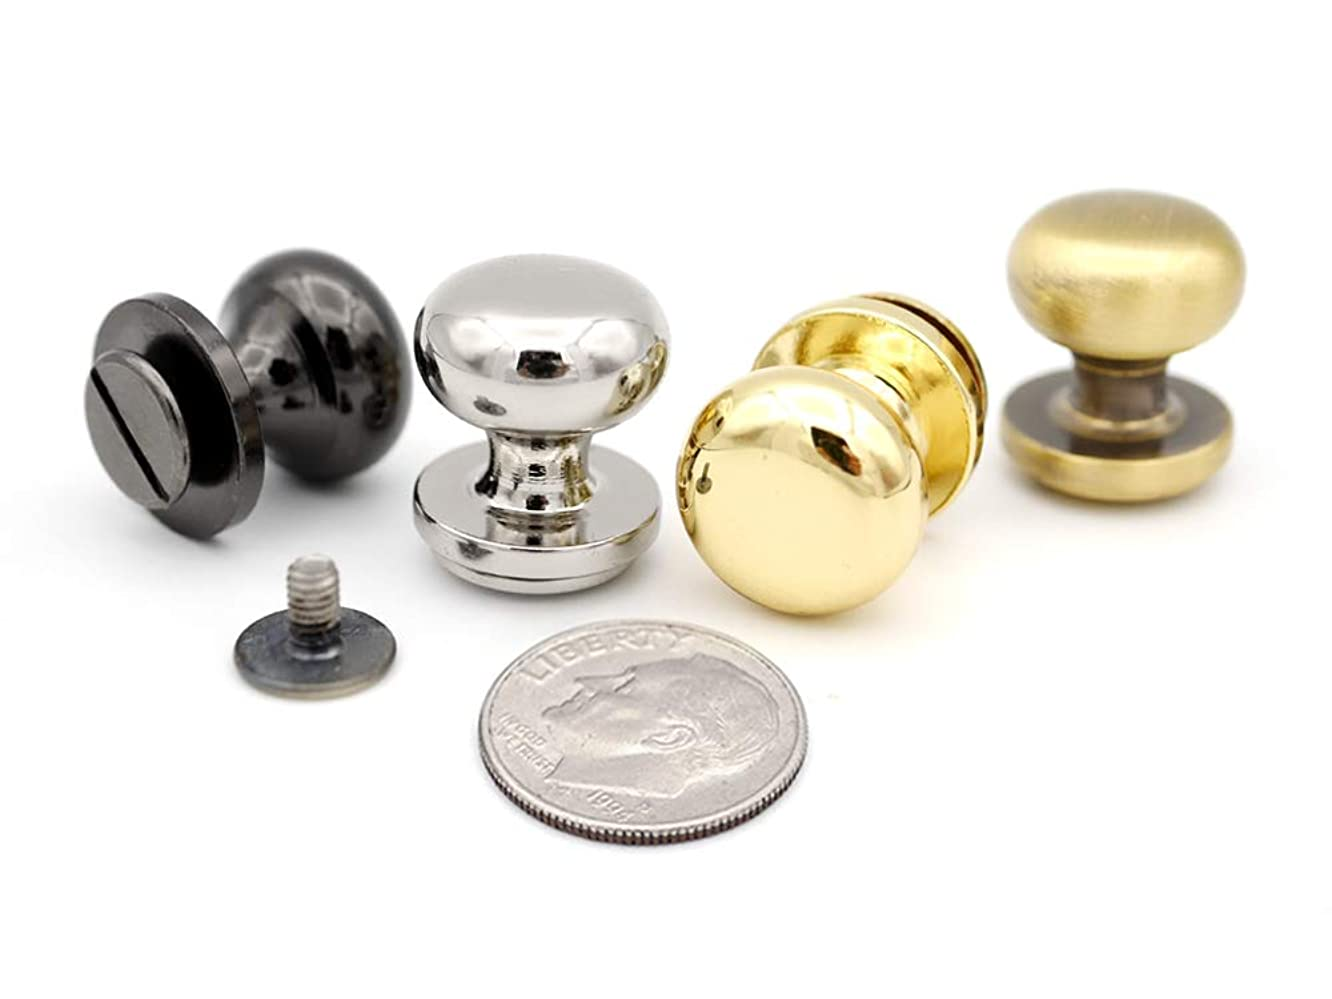 CRAFTMEmore 14MM Metal Ball Head Stud Screw Back Nipple Rivet Studs Button Belt Stopper Quality Leathercraft Pack of 5 (Brushed Brass)